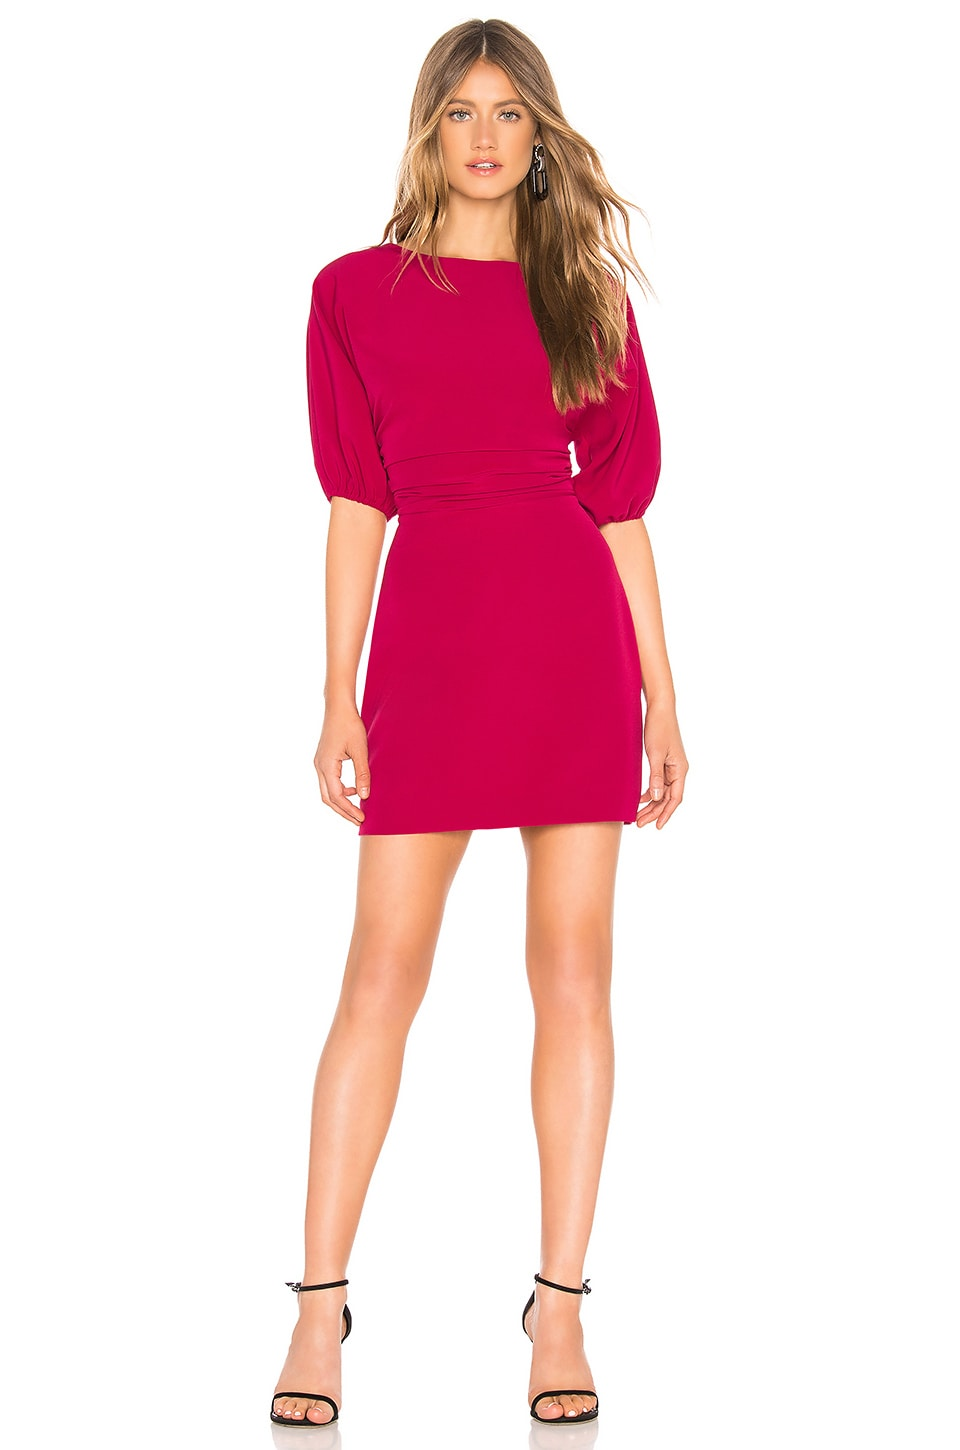 NBD Aine Mini Dress in Raspberry